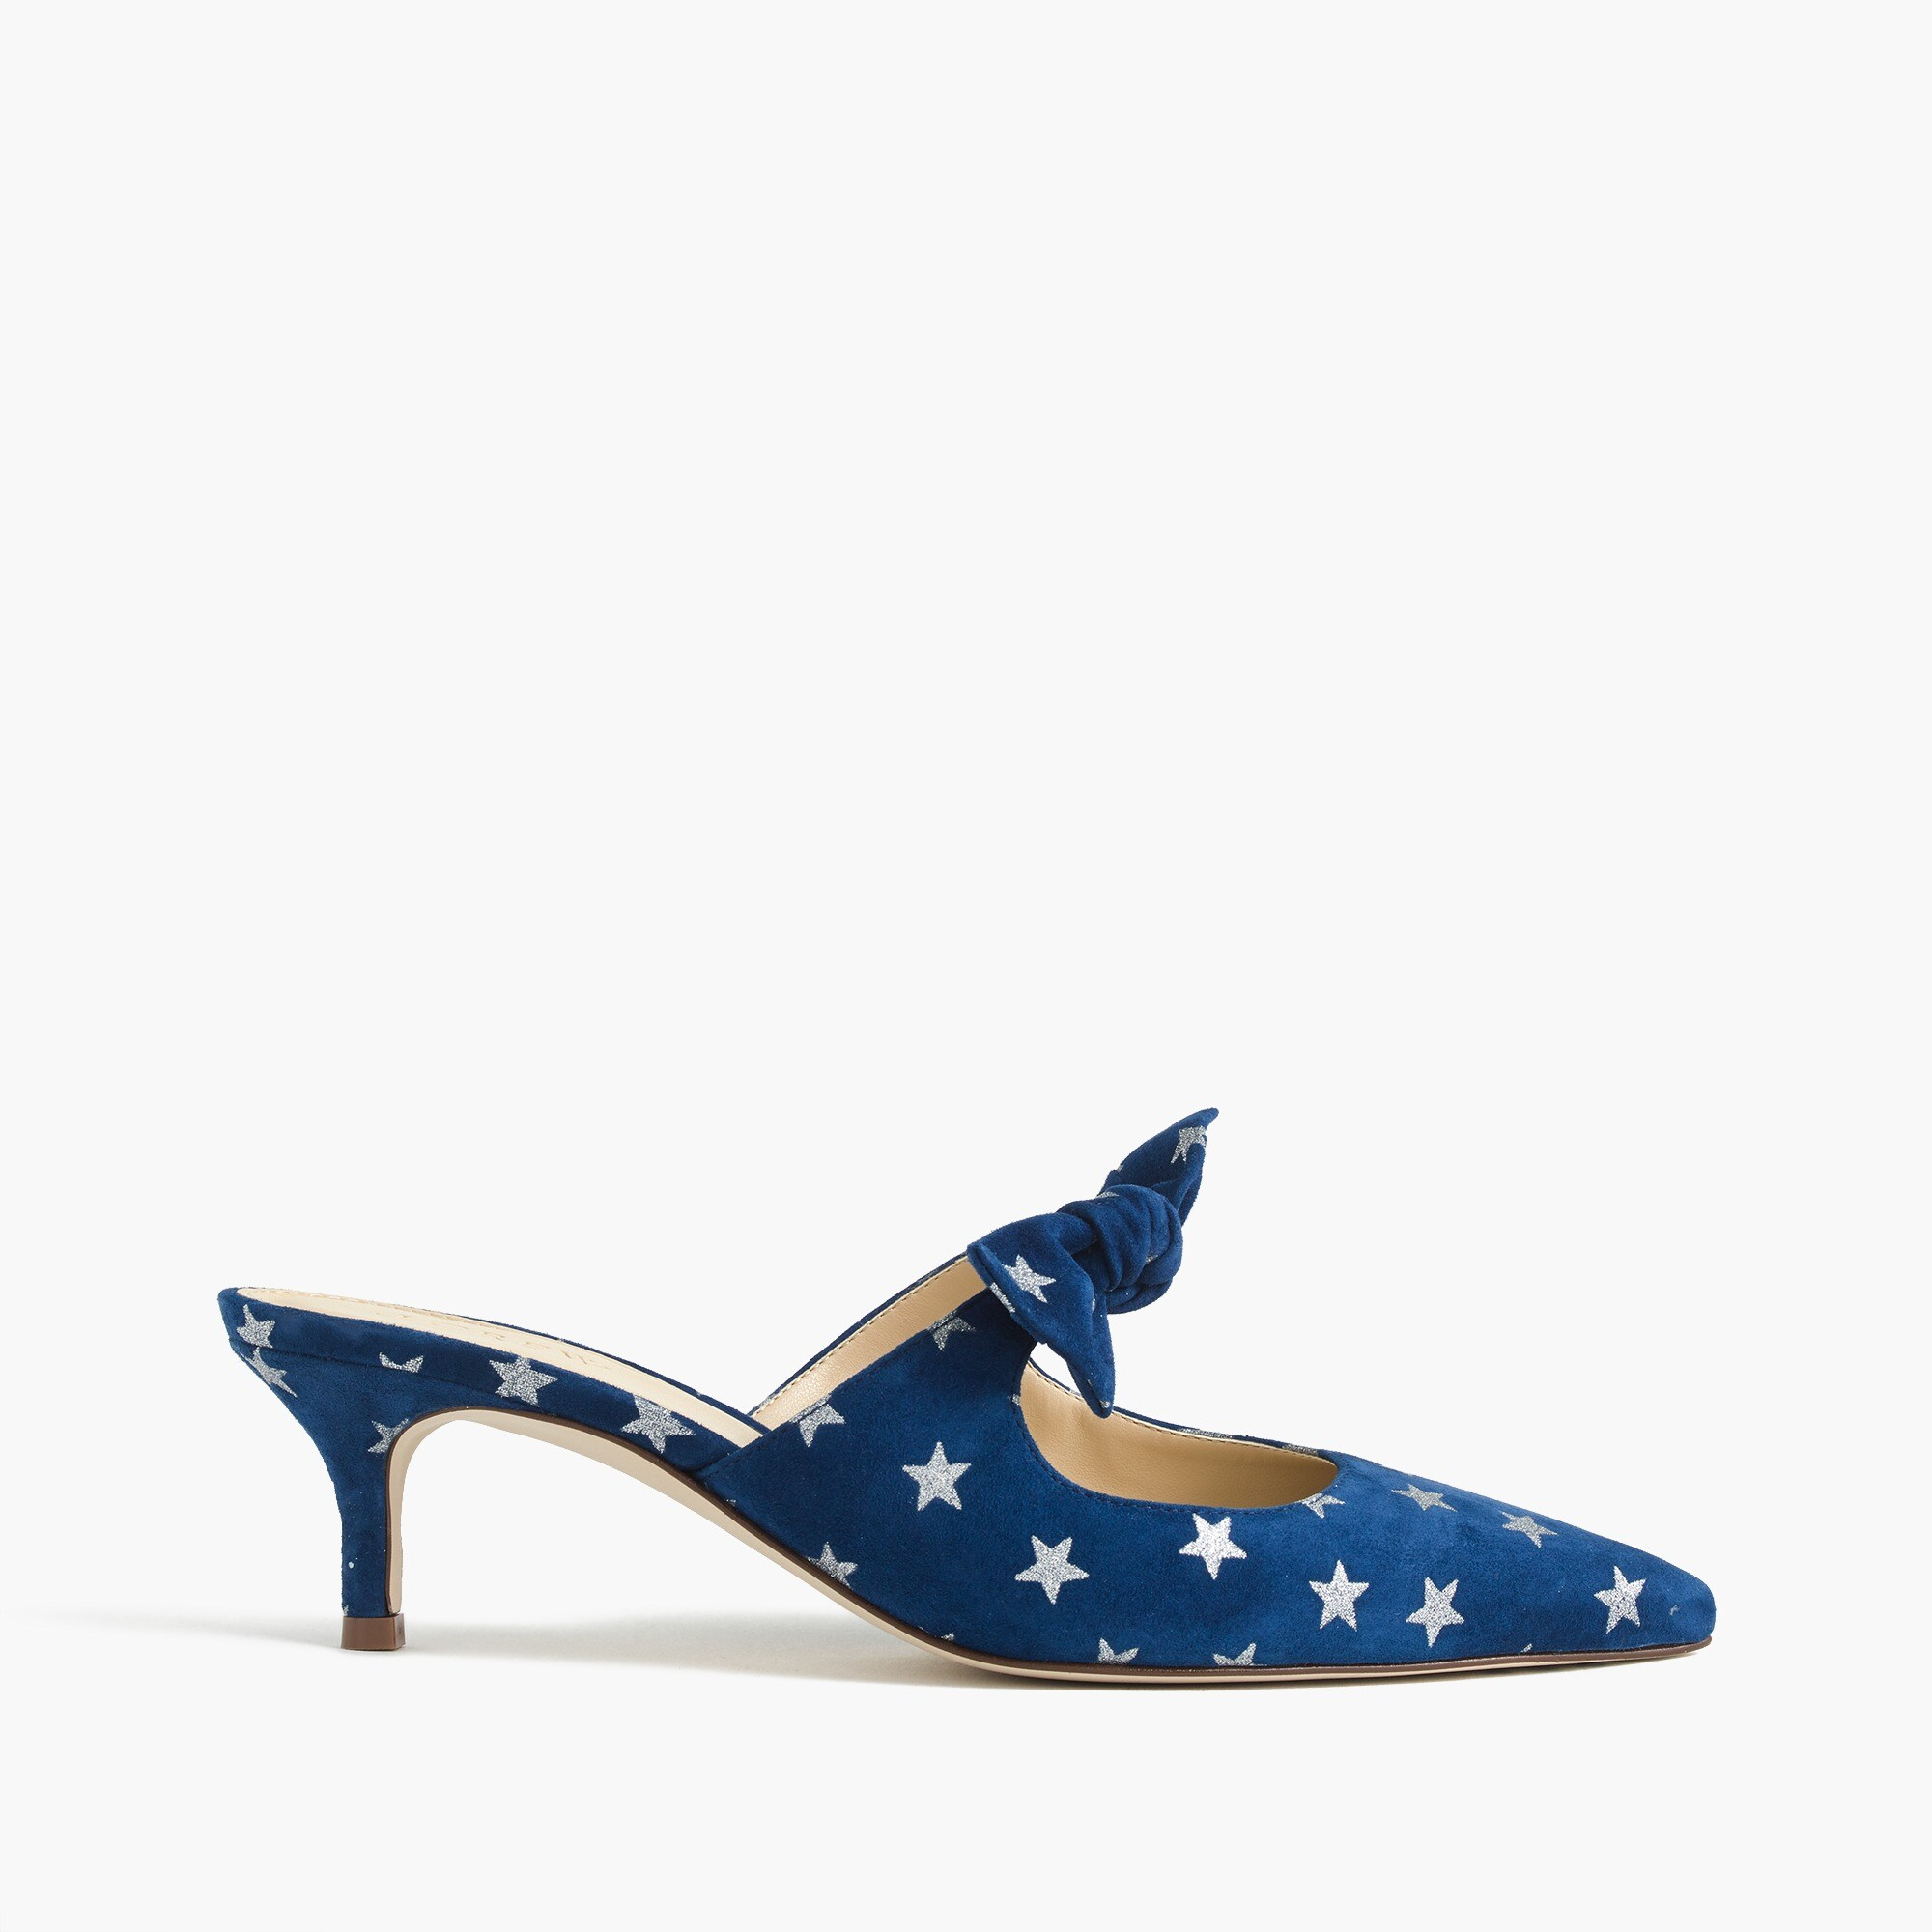 Image 2 for Sophia mules (55mm) in starry suede